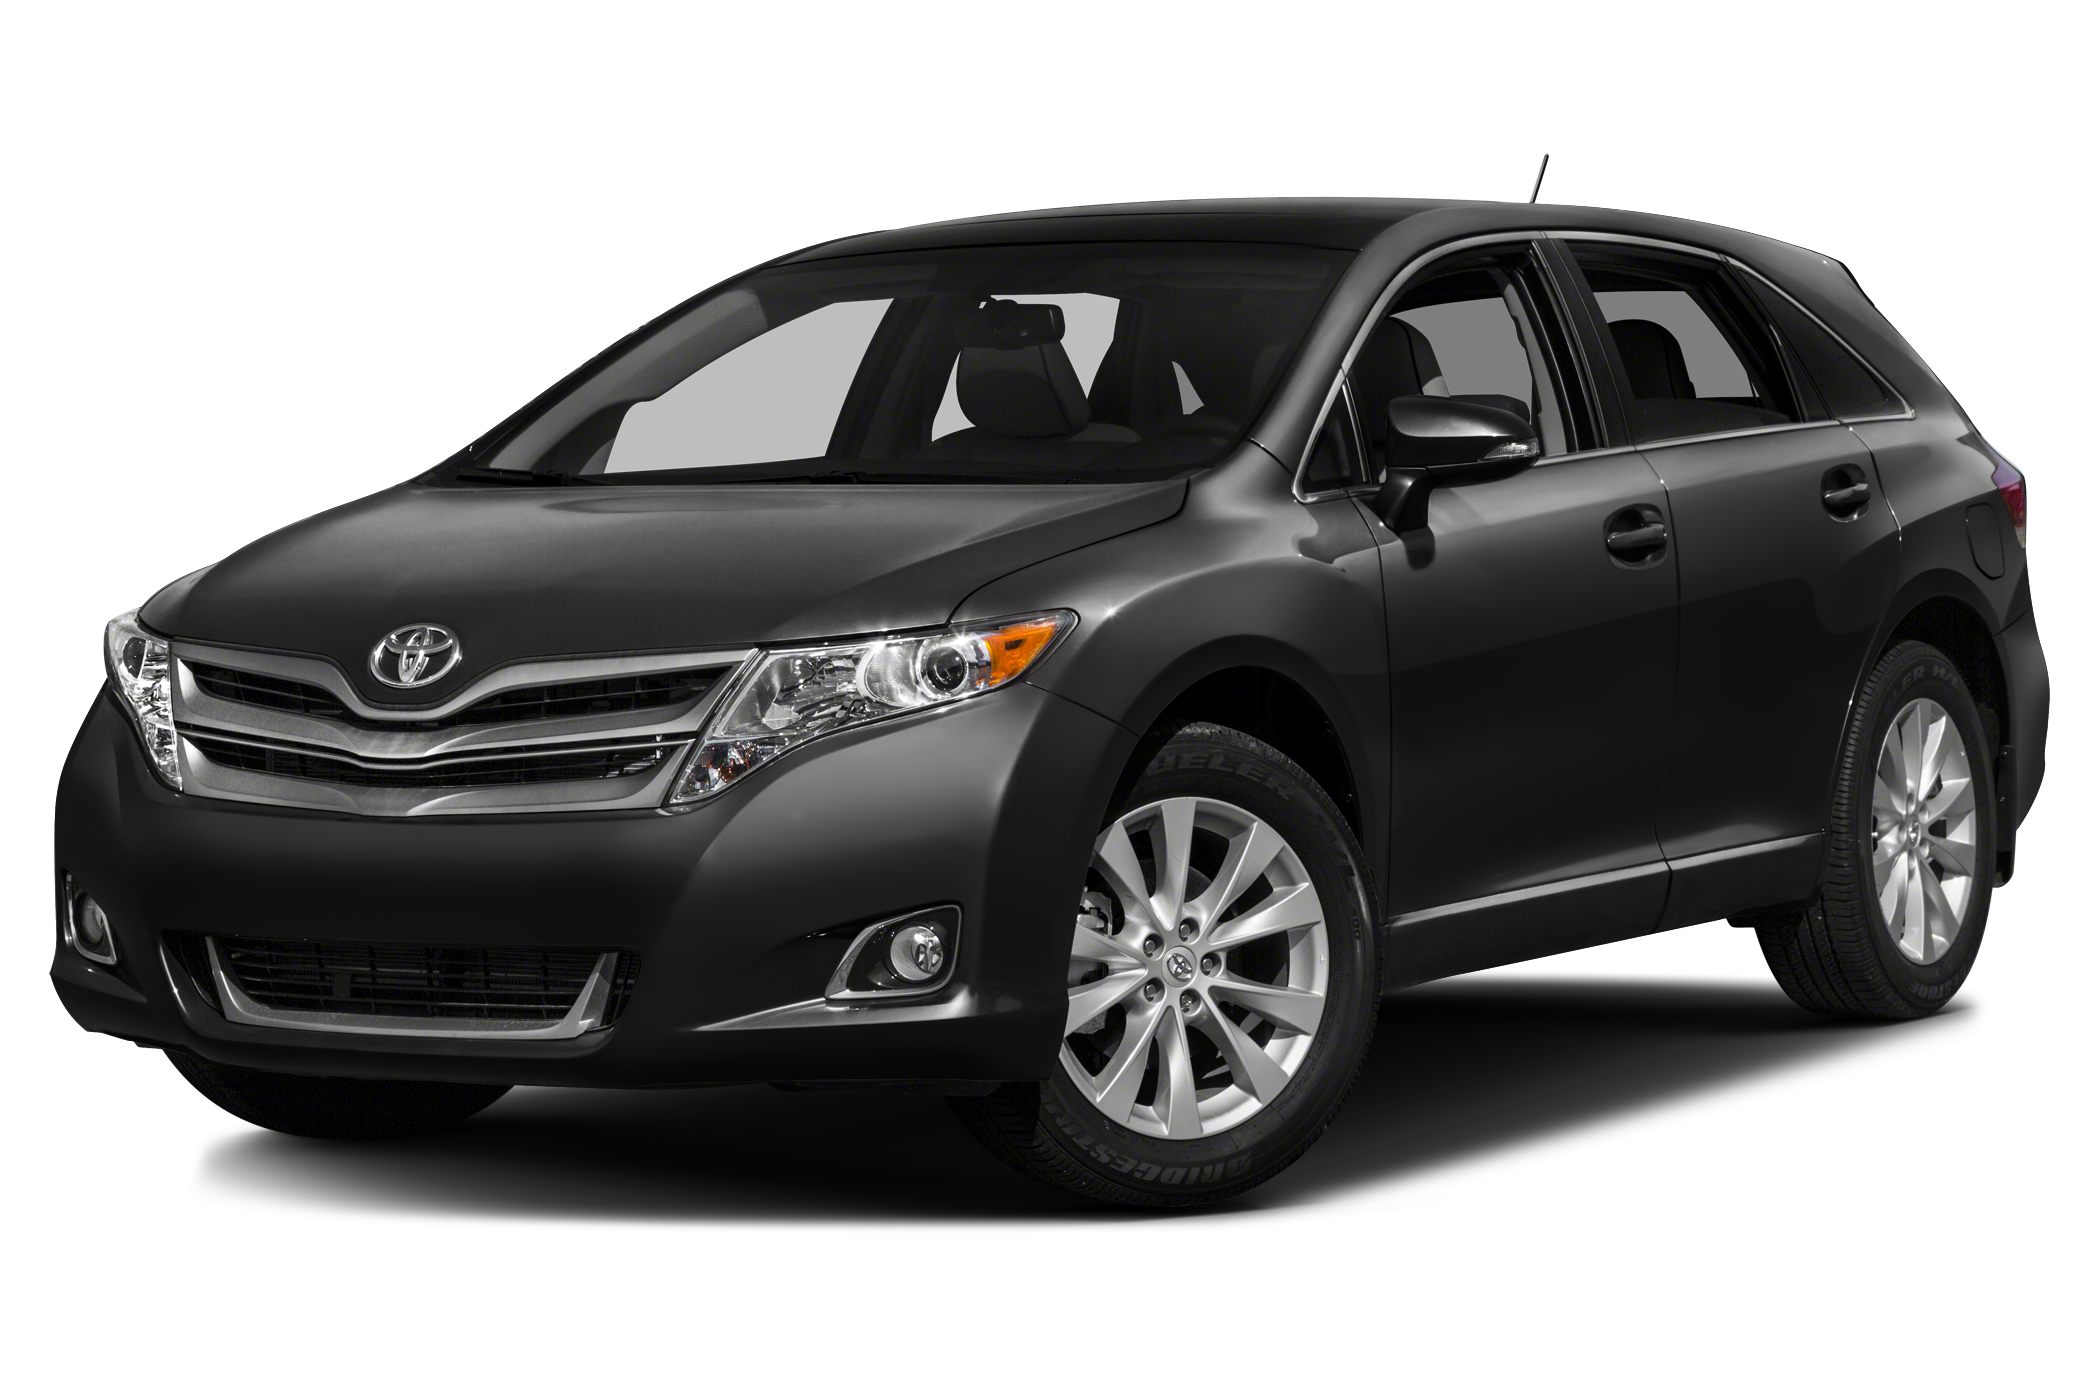 2015 Toyota Venza Owner Reviews and Ratings